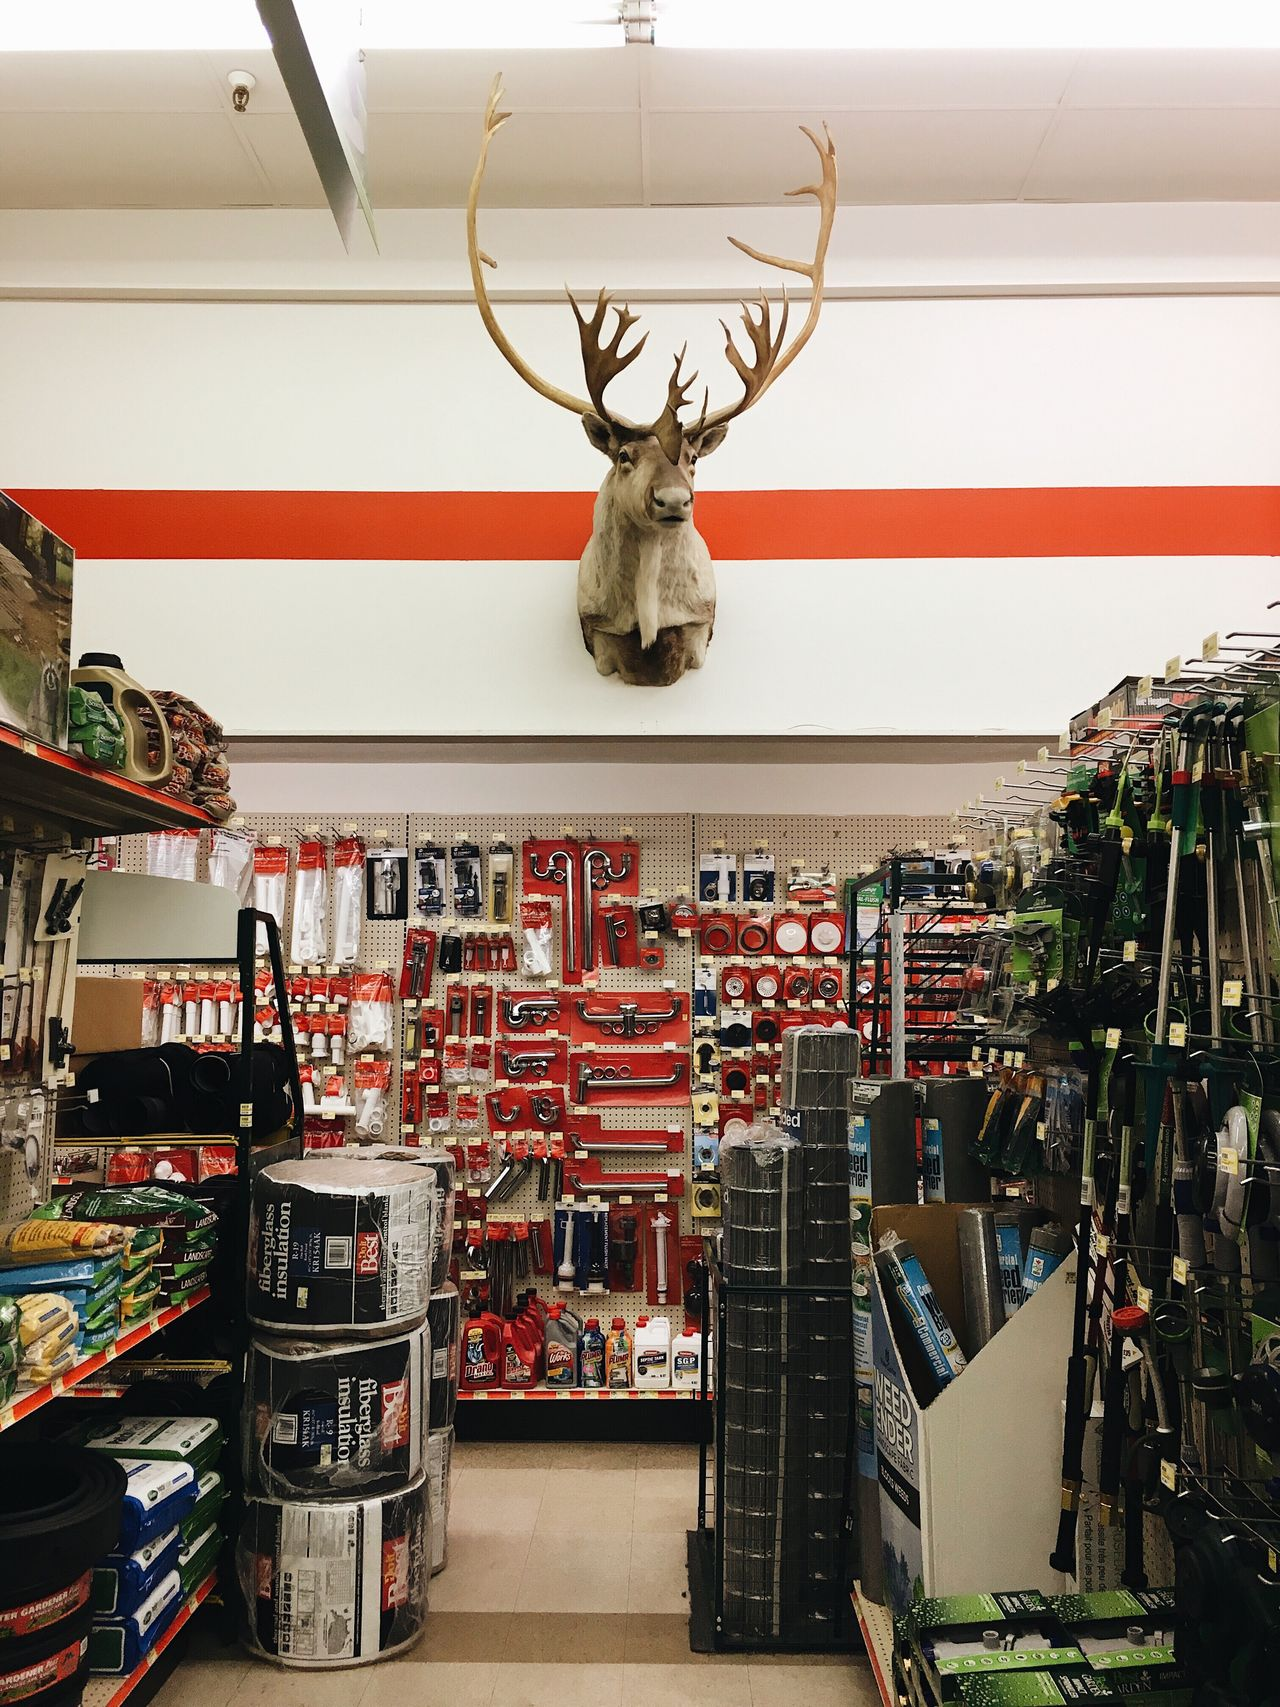 after the car show, we stopped by the local hardware shop. #antlerseverywhere Heber City